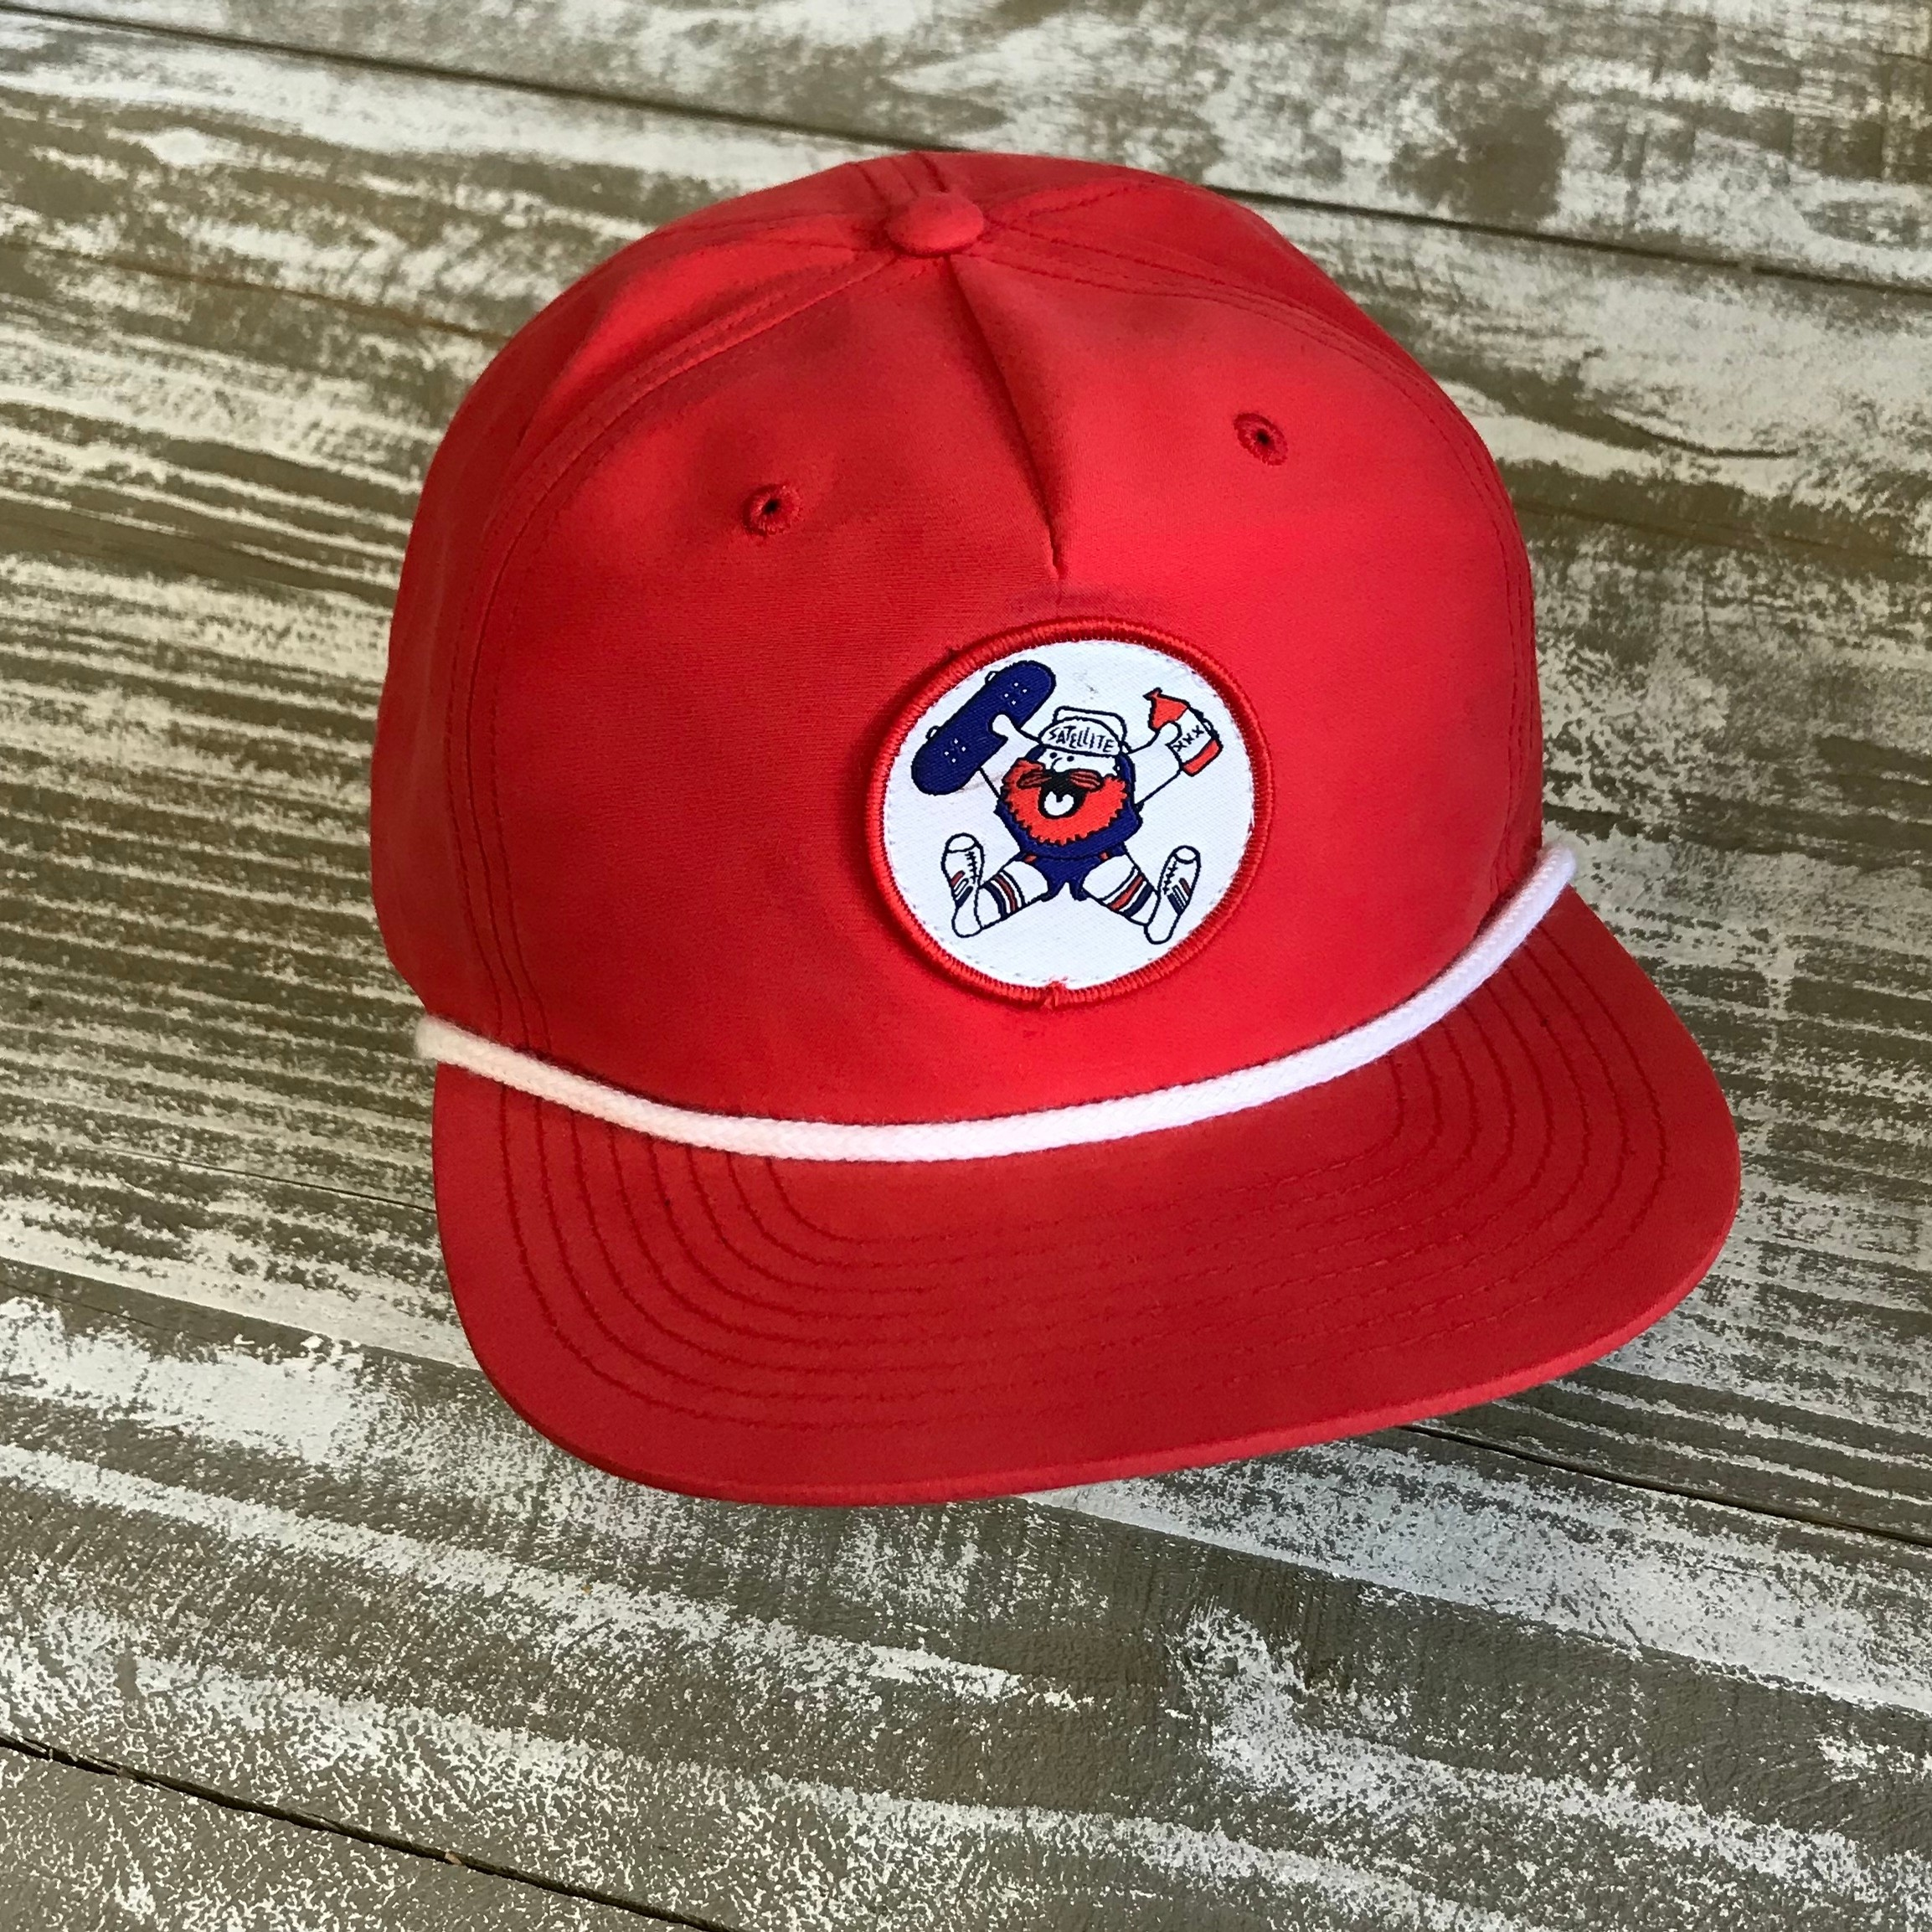 Satellite Grandpa Cap (red/party miner)